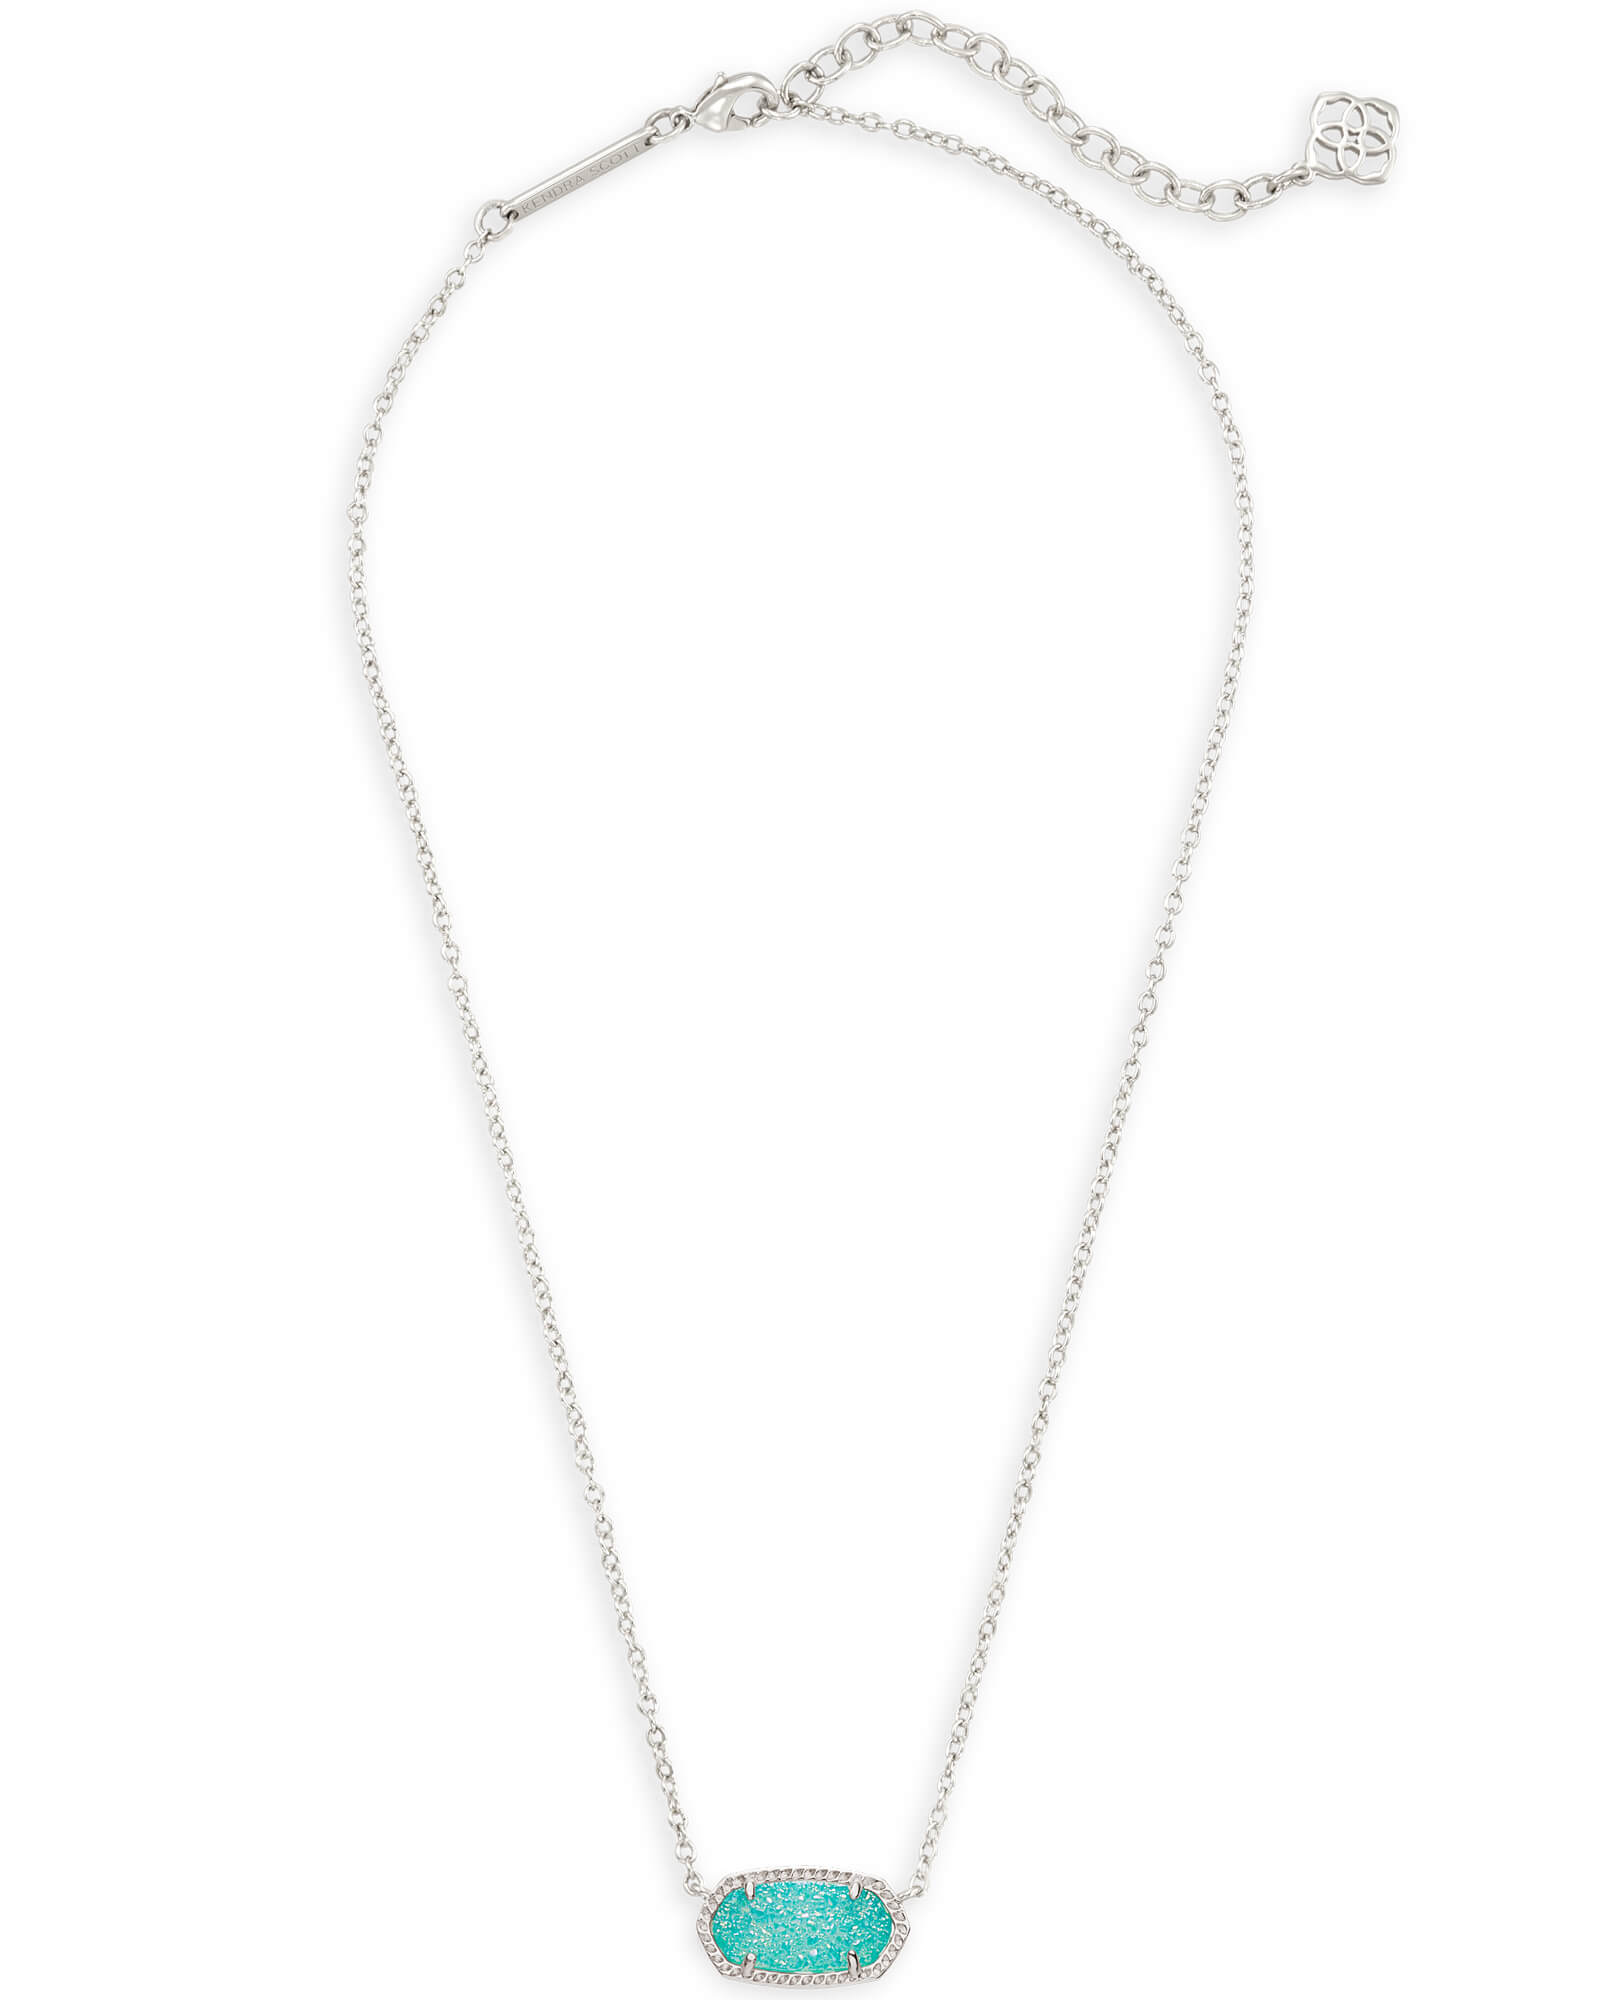 Elisa Silver Pendant Necklace in Teal Drusy